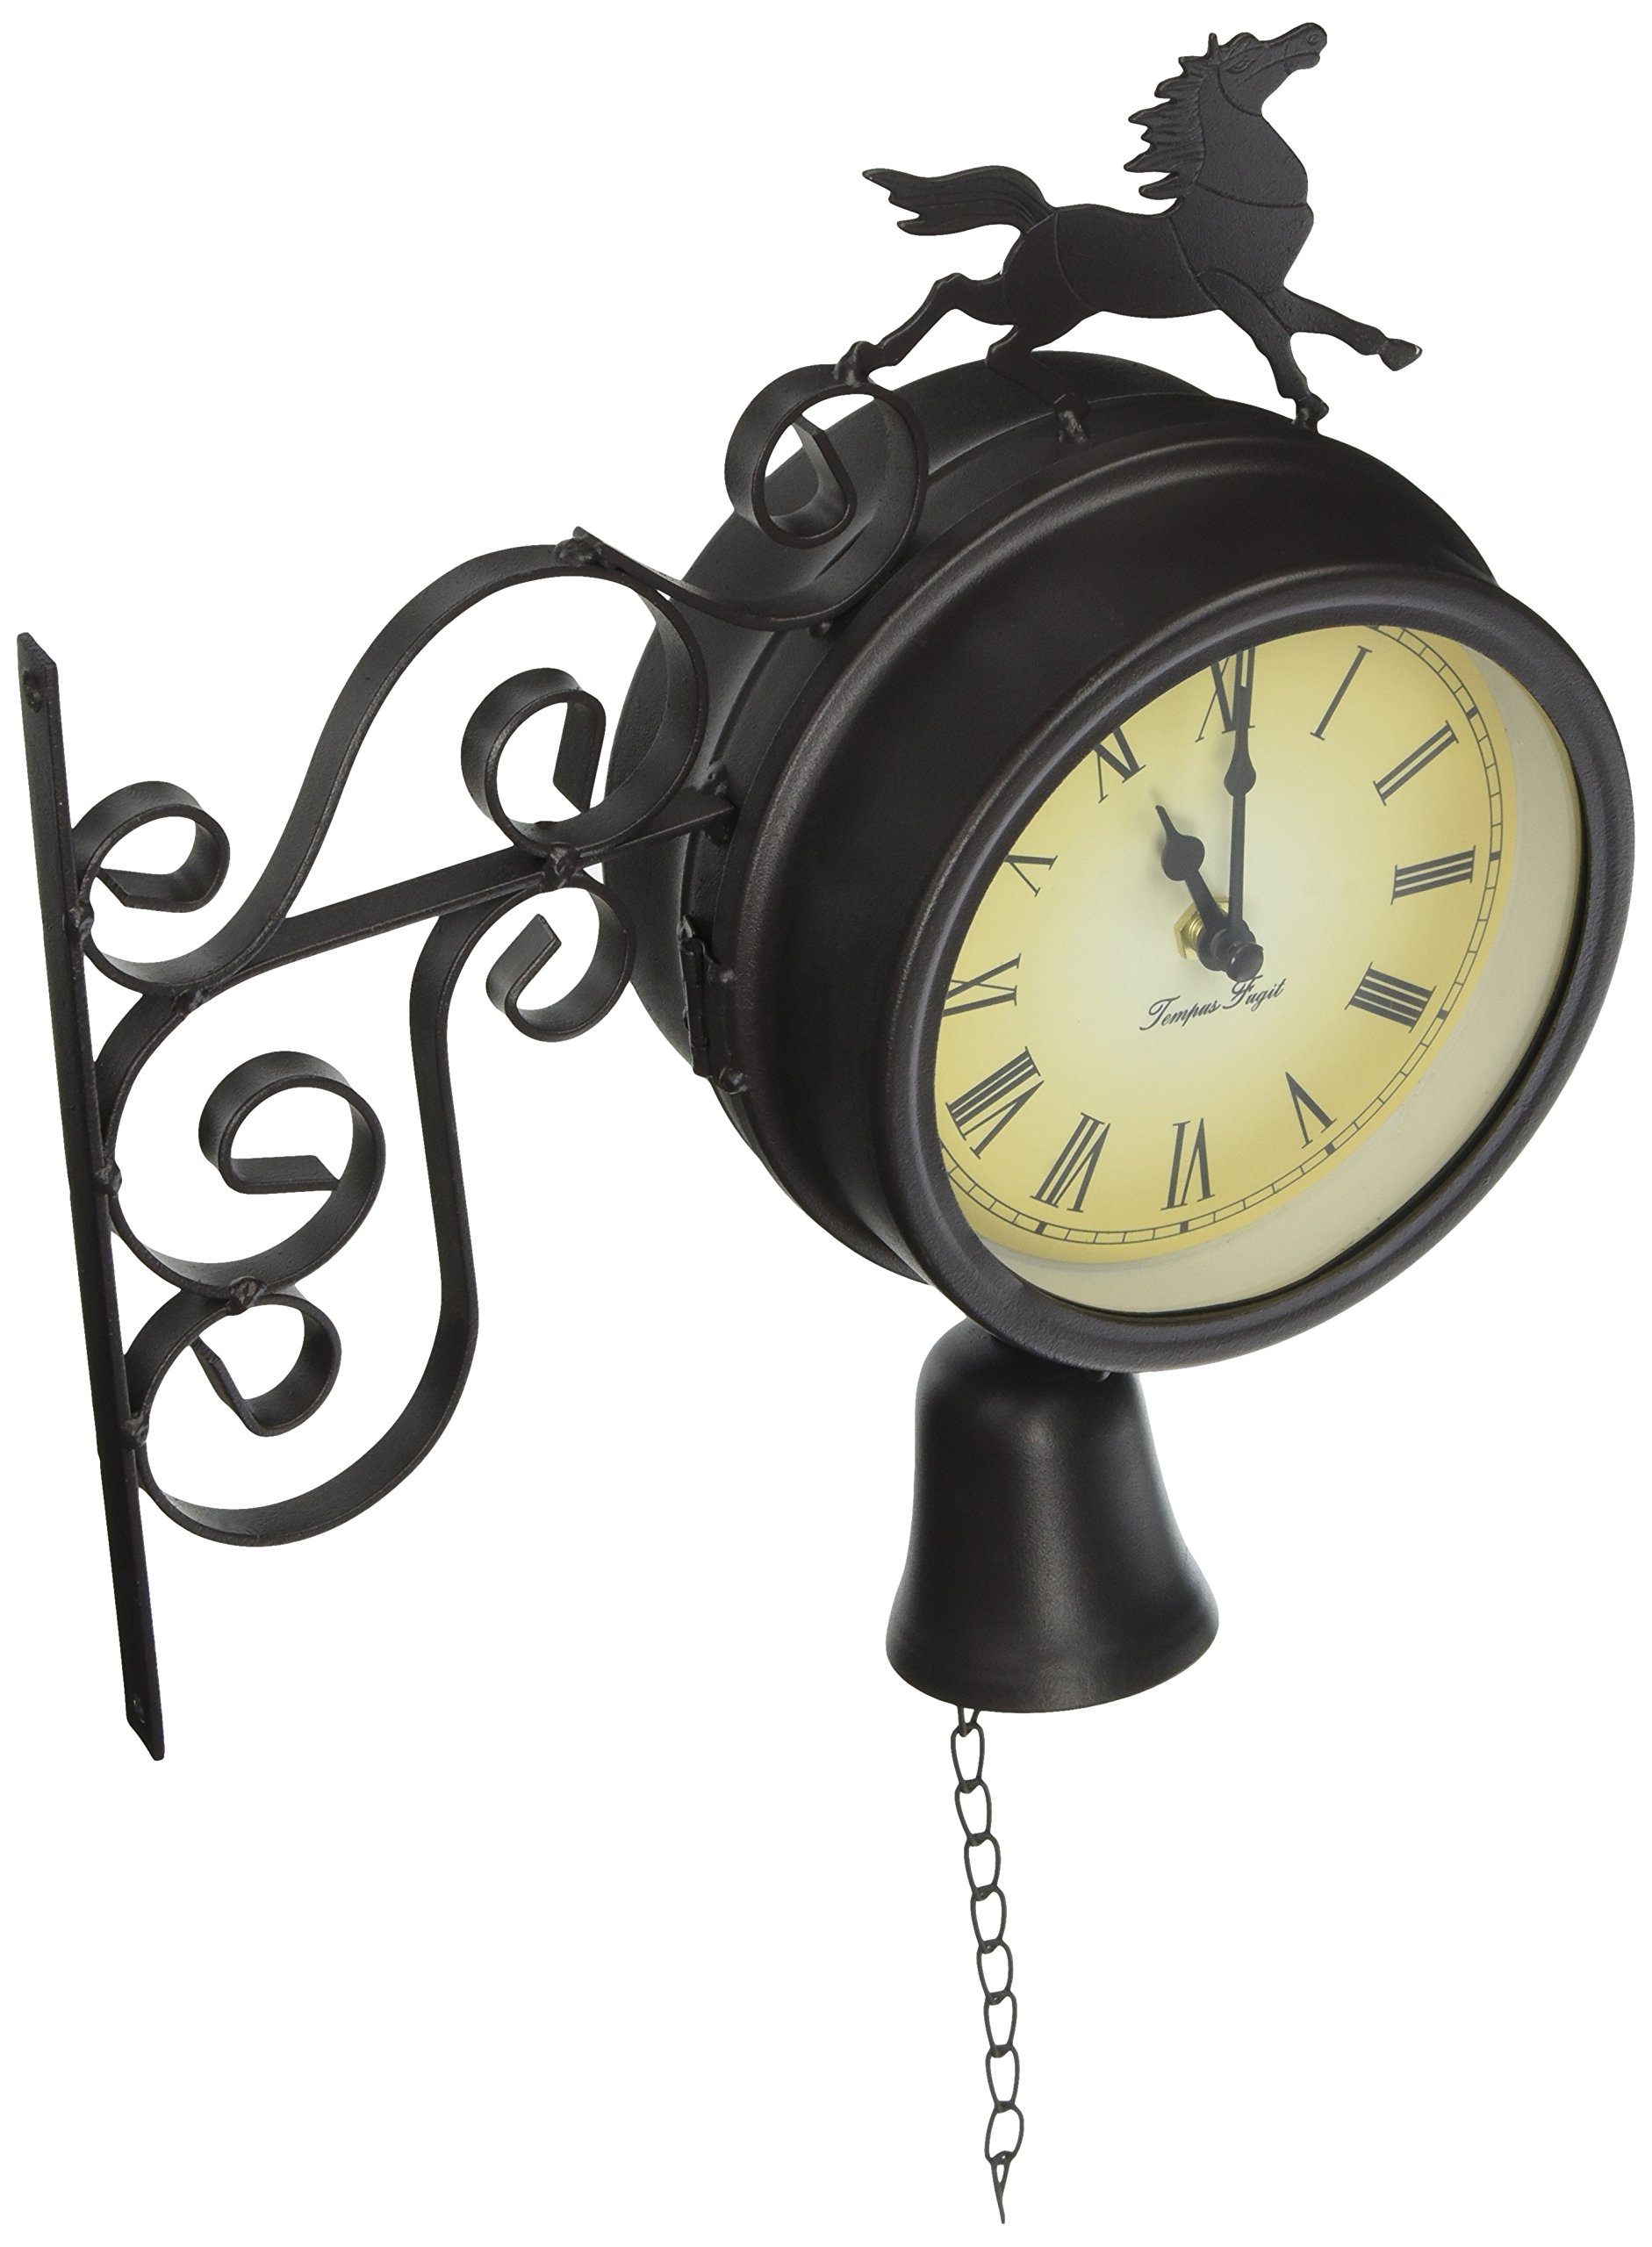 Horse and Bell Clock with Thermometer - 18.7in